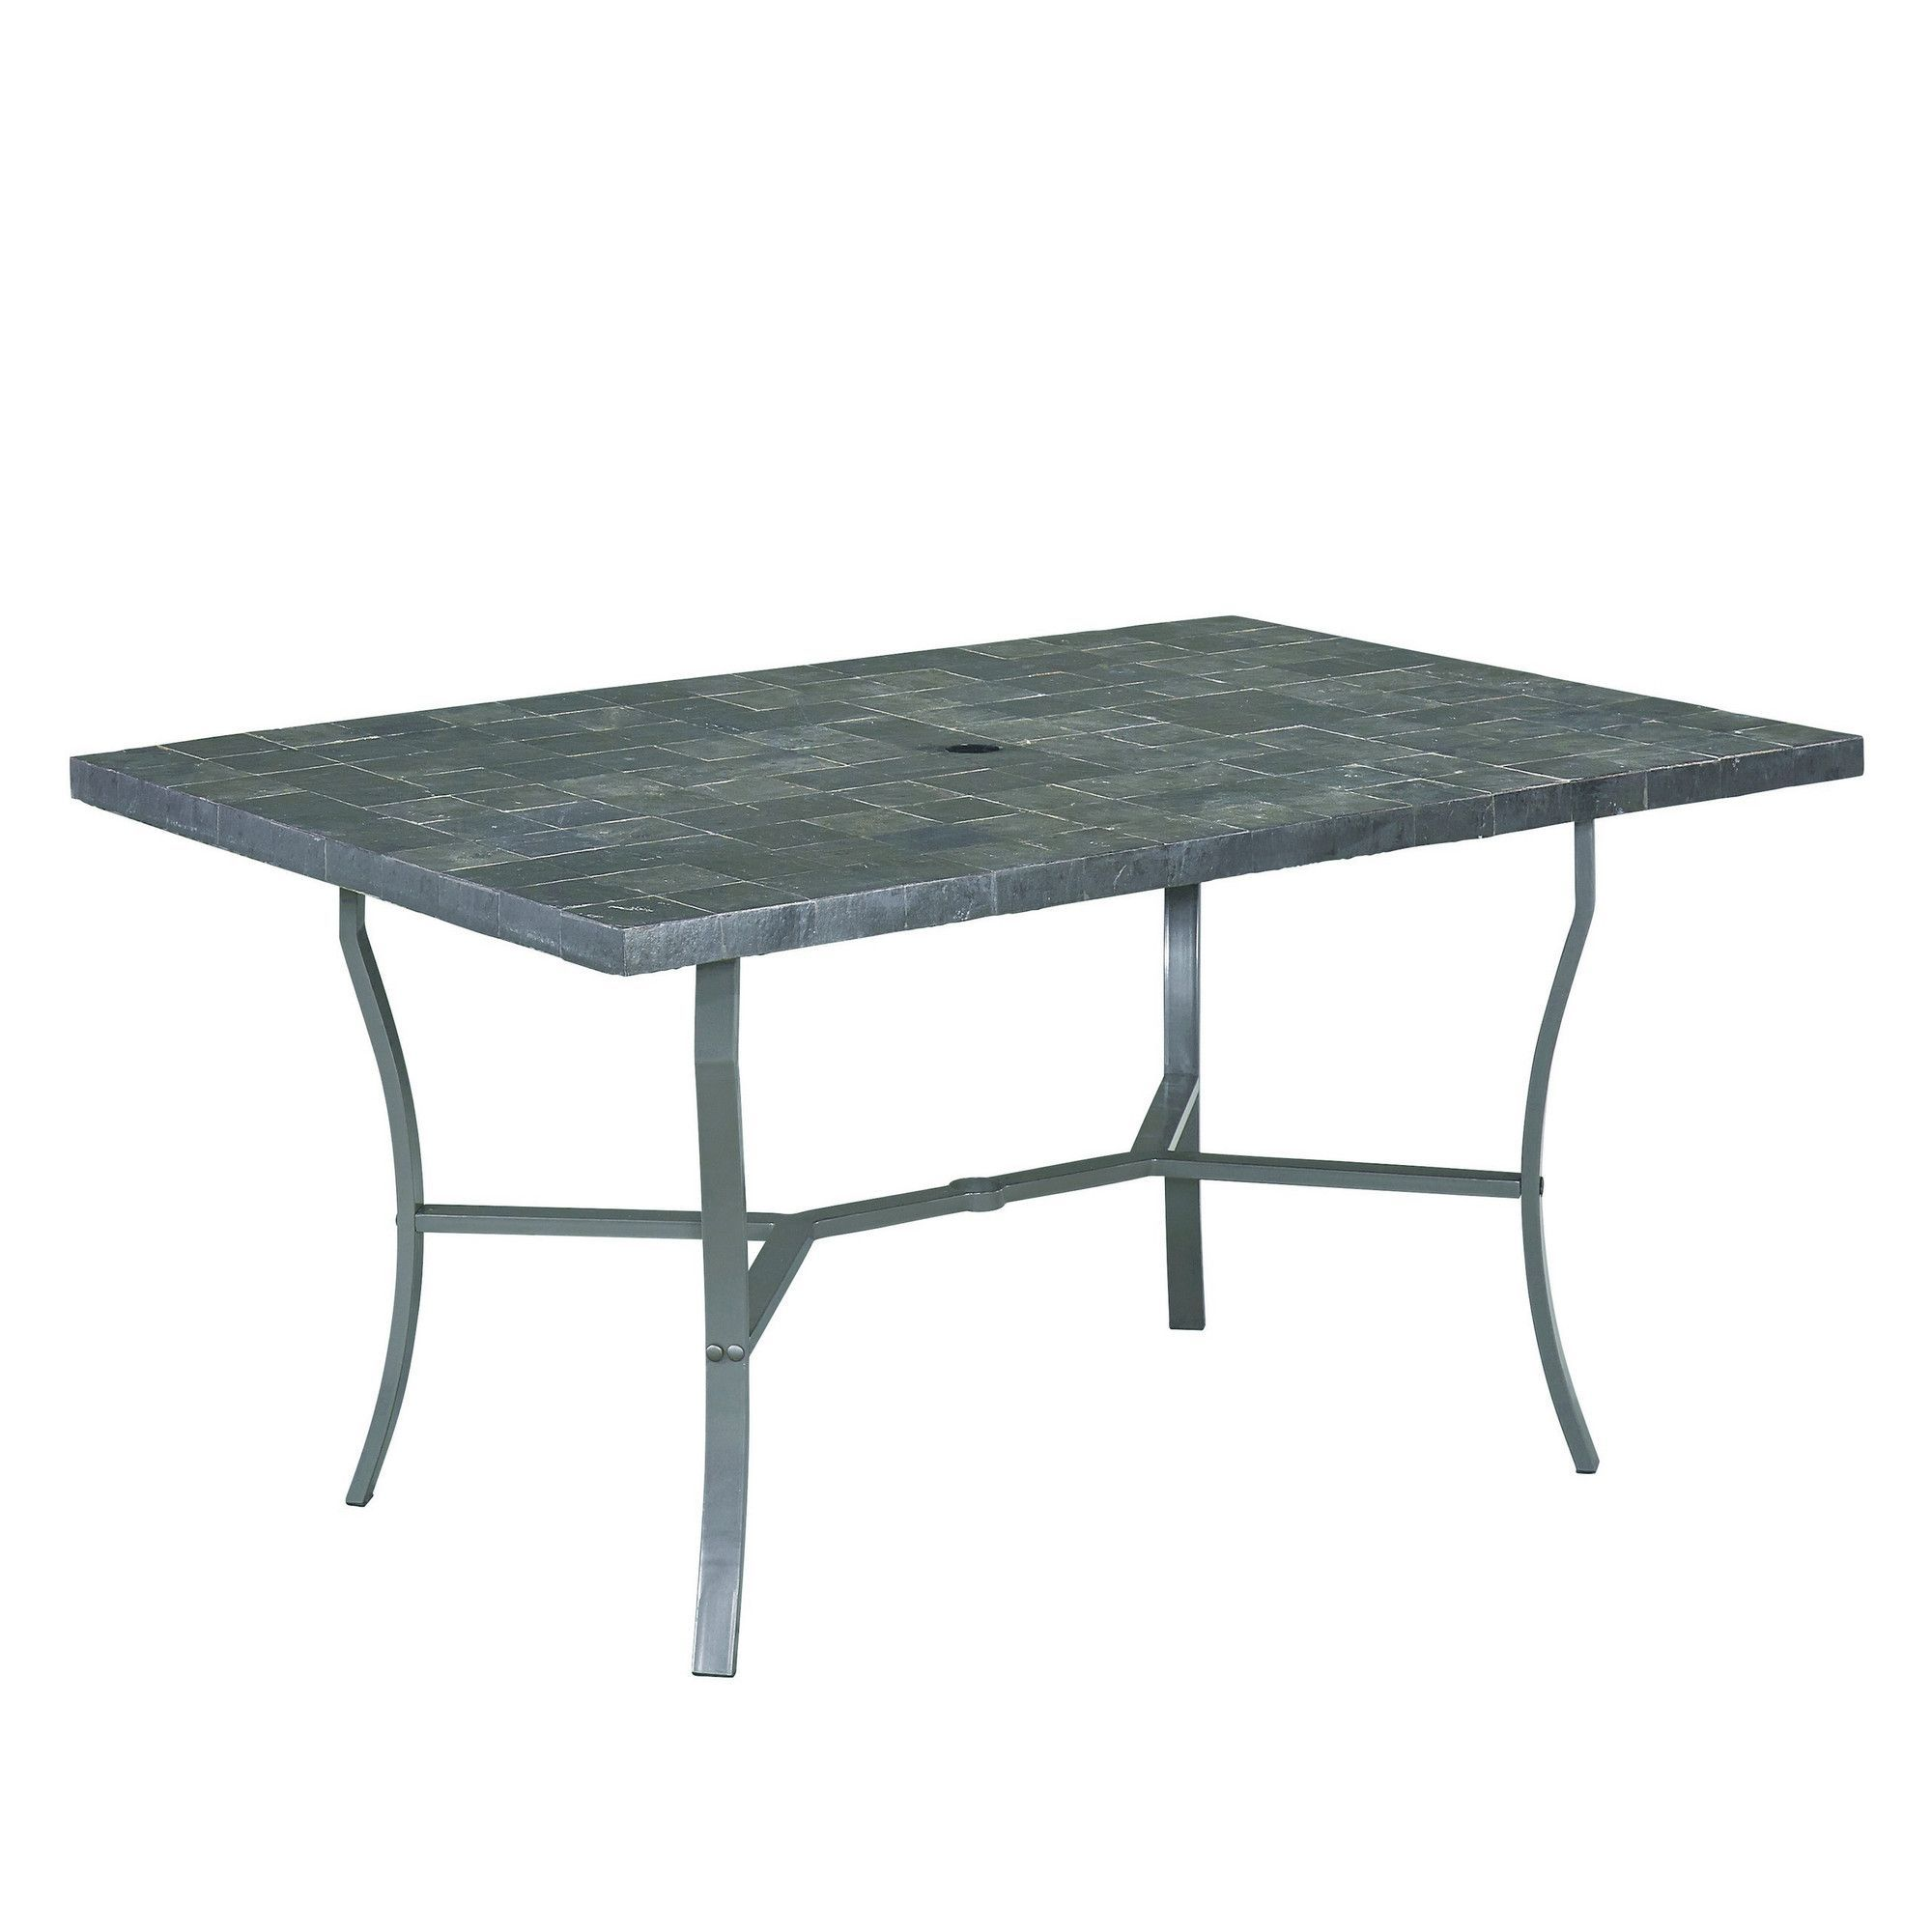 Home Styles Cumberland Stone 60 In. Rectangular Slate Tile Top Patio Dining  Table   Take Your Outdoor Dining To A Whole New Level Of Chic With The Home  ...